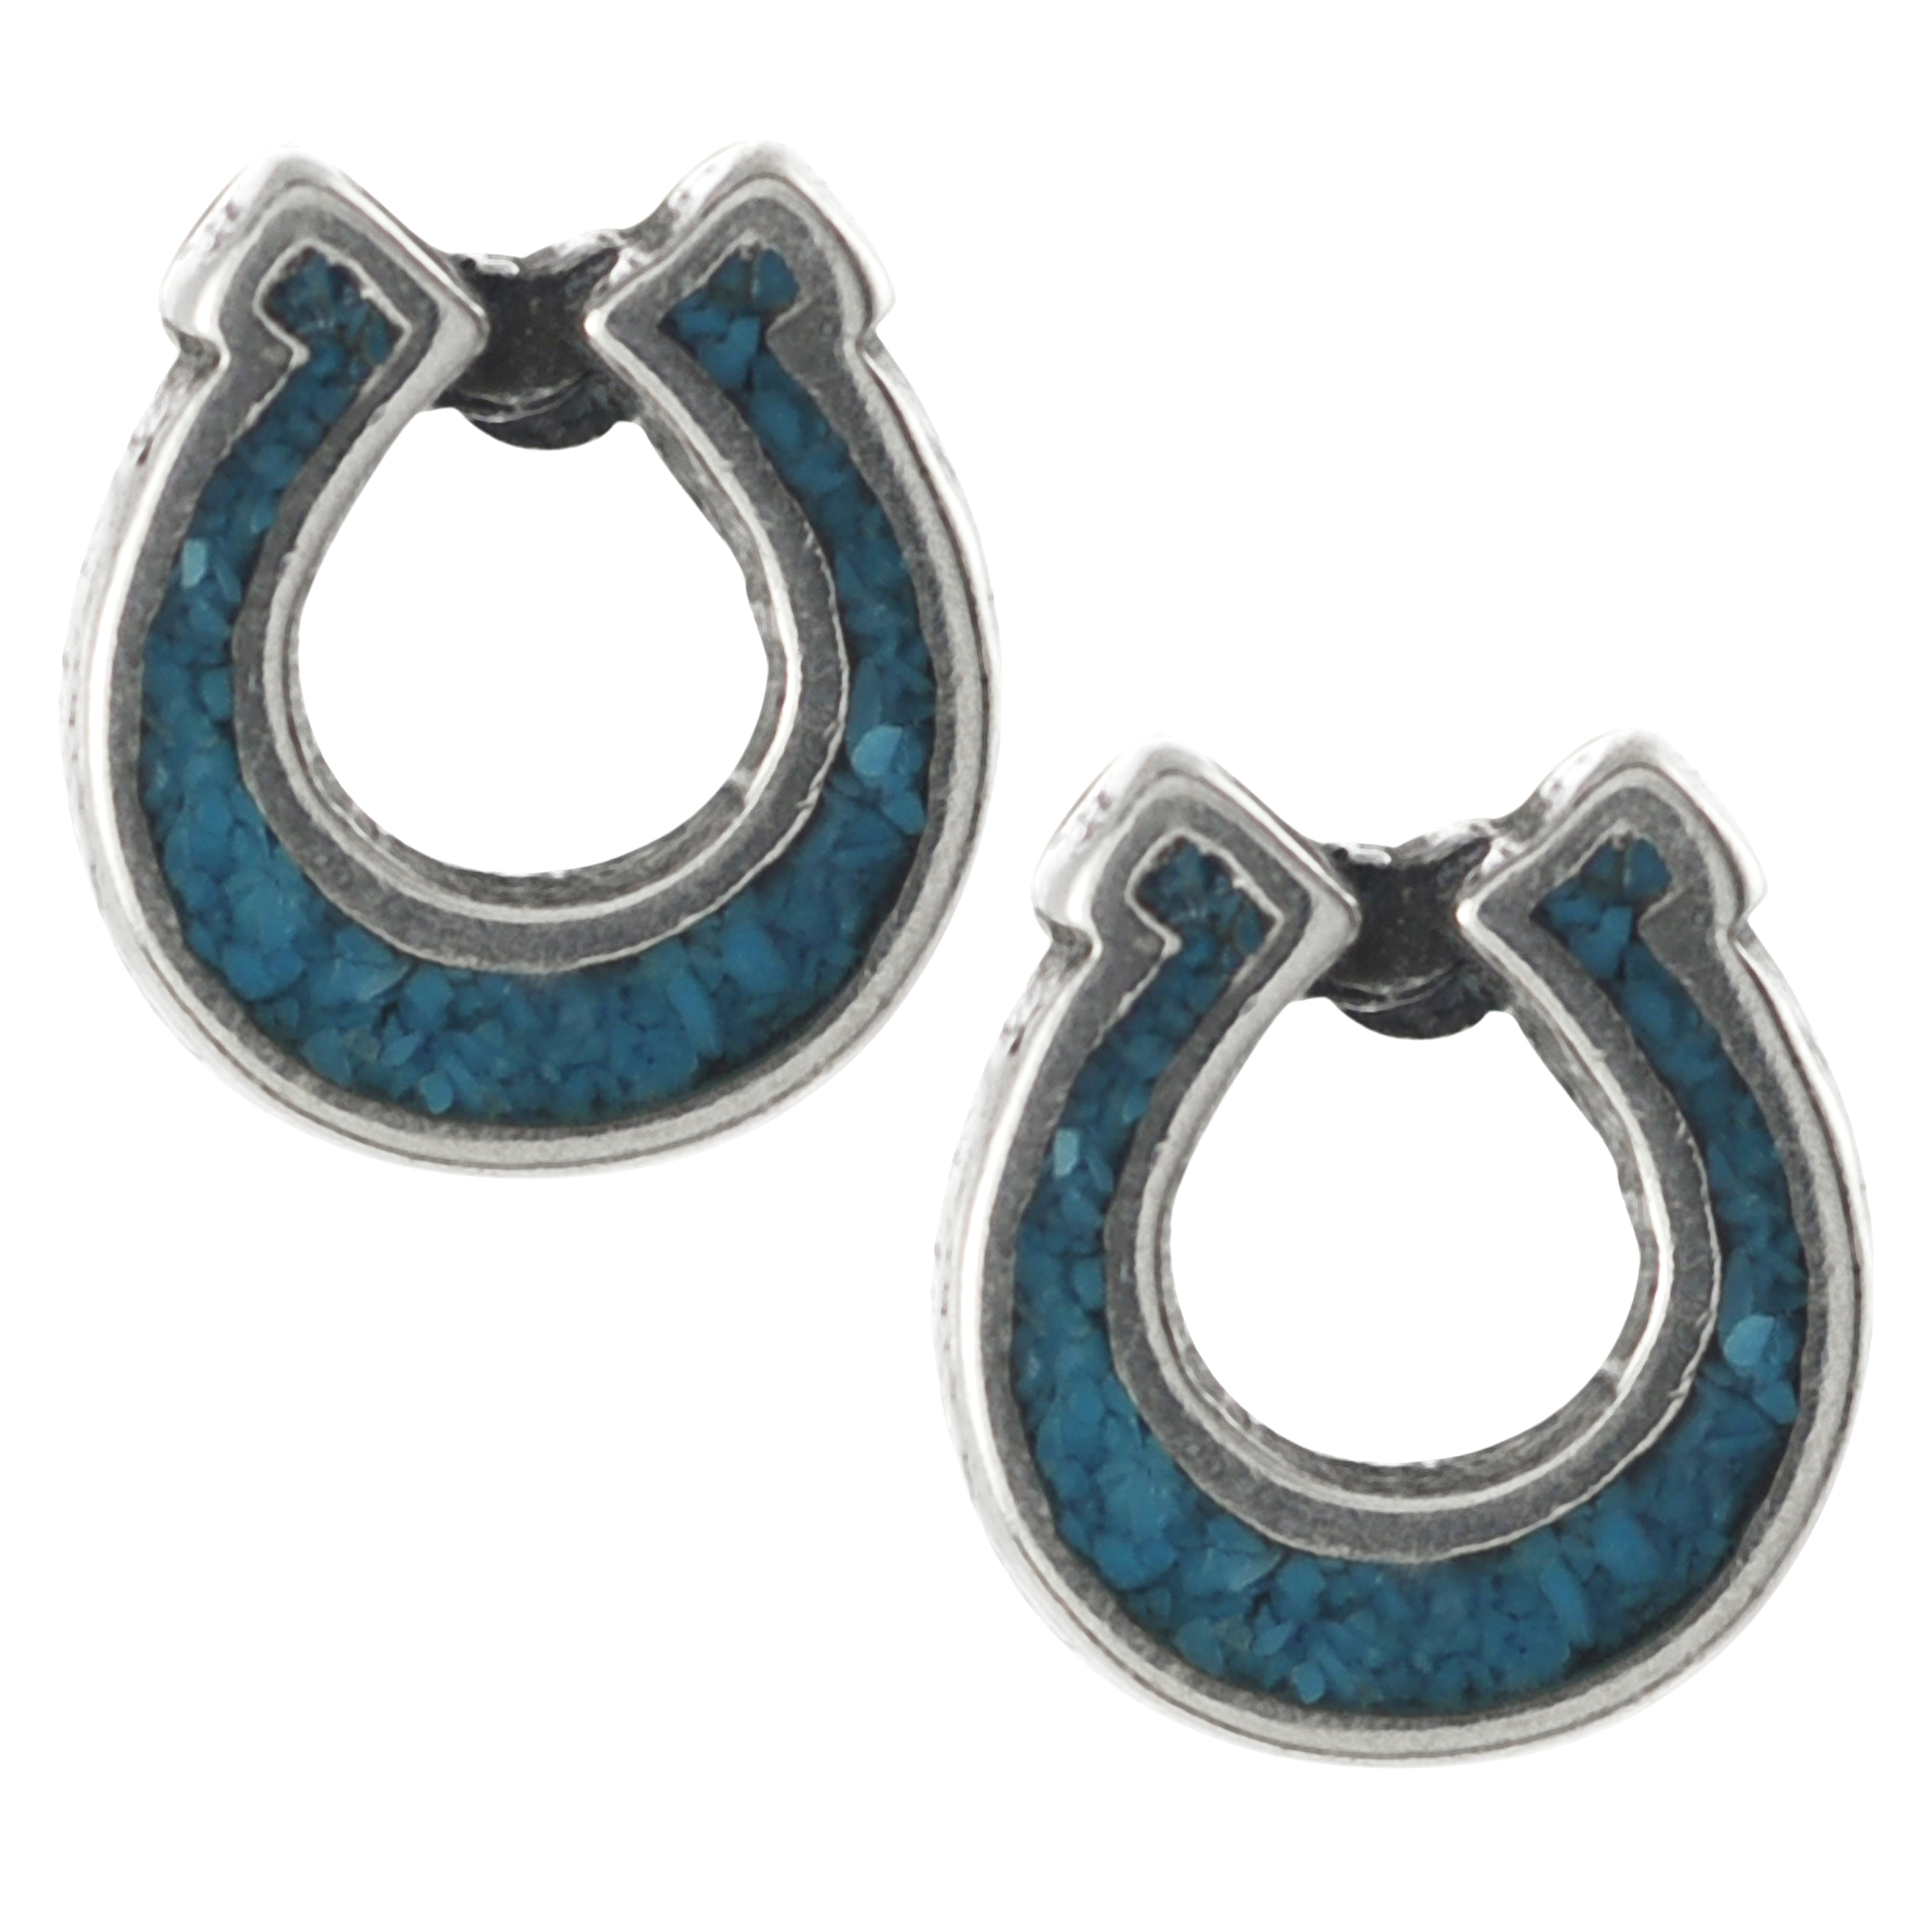 Tressa-Sterling-Silver-Genuine-Turquoise-Horseshoe-Stud-Earrings-L14378210